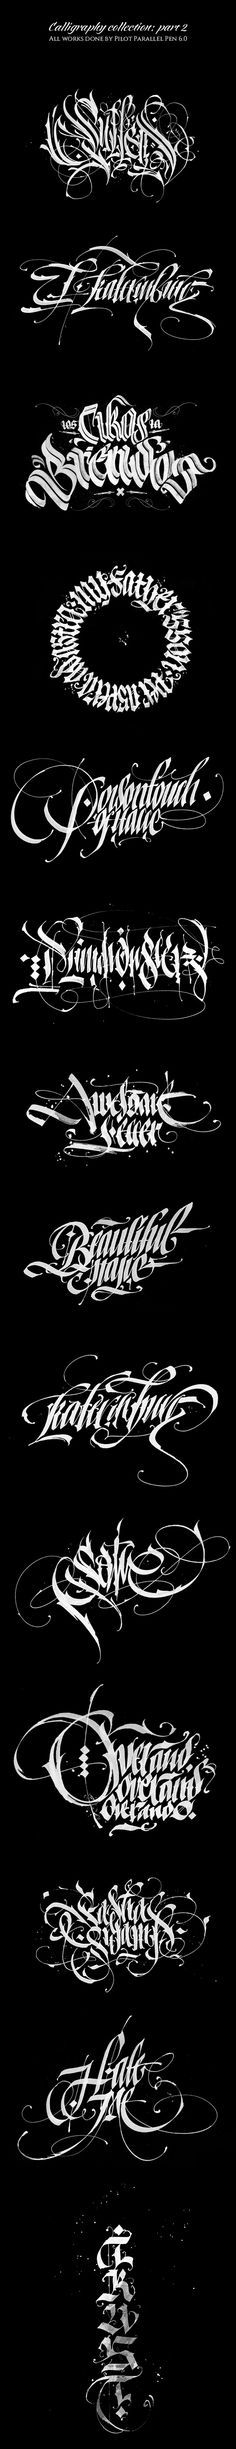 Calligraphy collection by By Pokras Lampas-- Each stroke evokes emotion Calligraphy Types, Types Of Lettering, Calligraphy Letters, Typography Letters, Lettering Design, Graffiti Tattoo, Graffiti Lettering, Cool Typography, Typographic Design